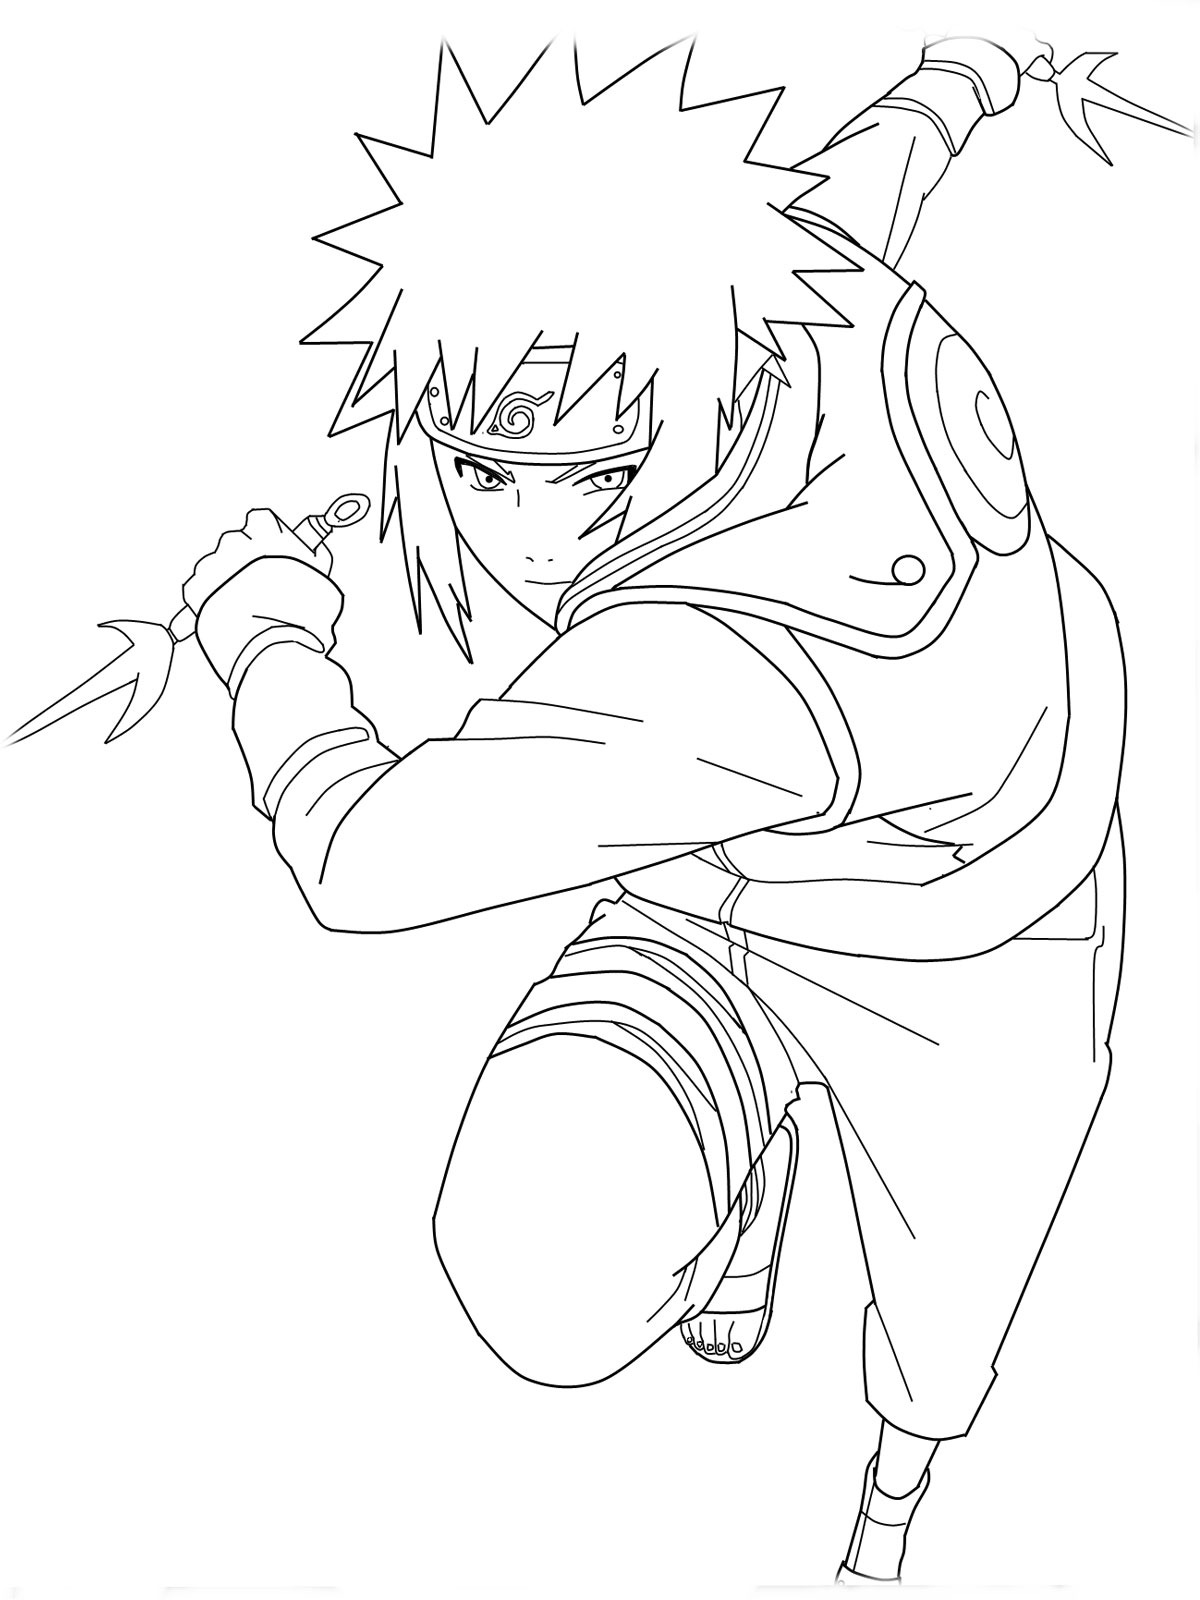 coloring pages naruto shippuden - naruto coloring pages printable realistic coloring pages